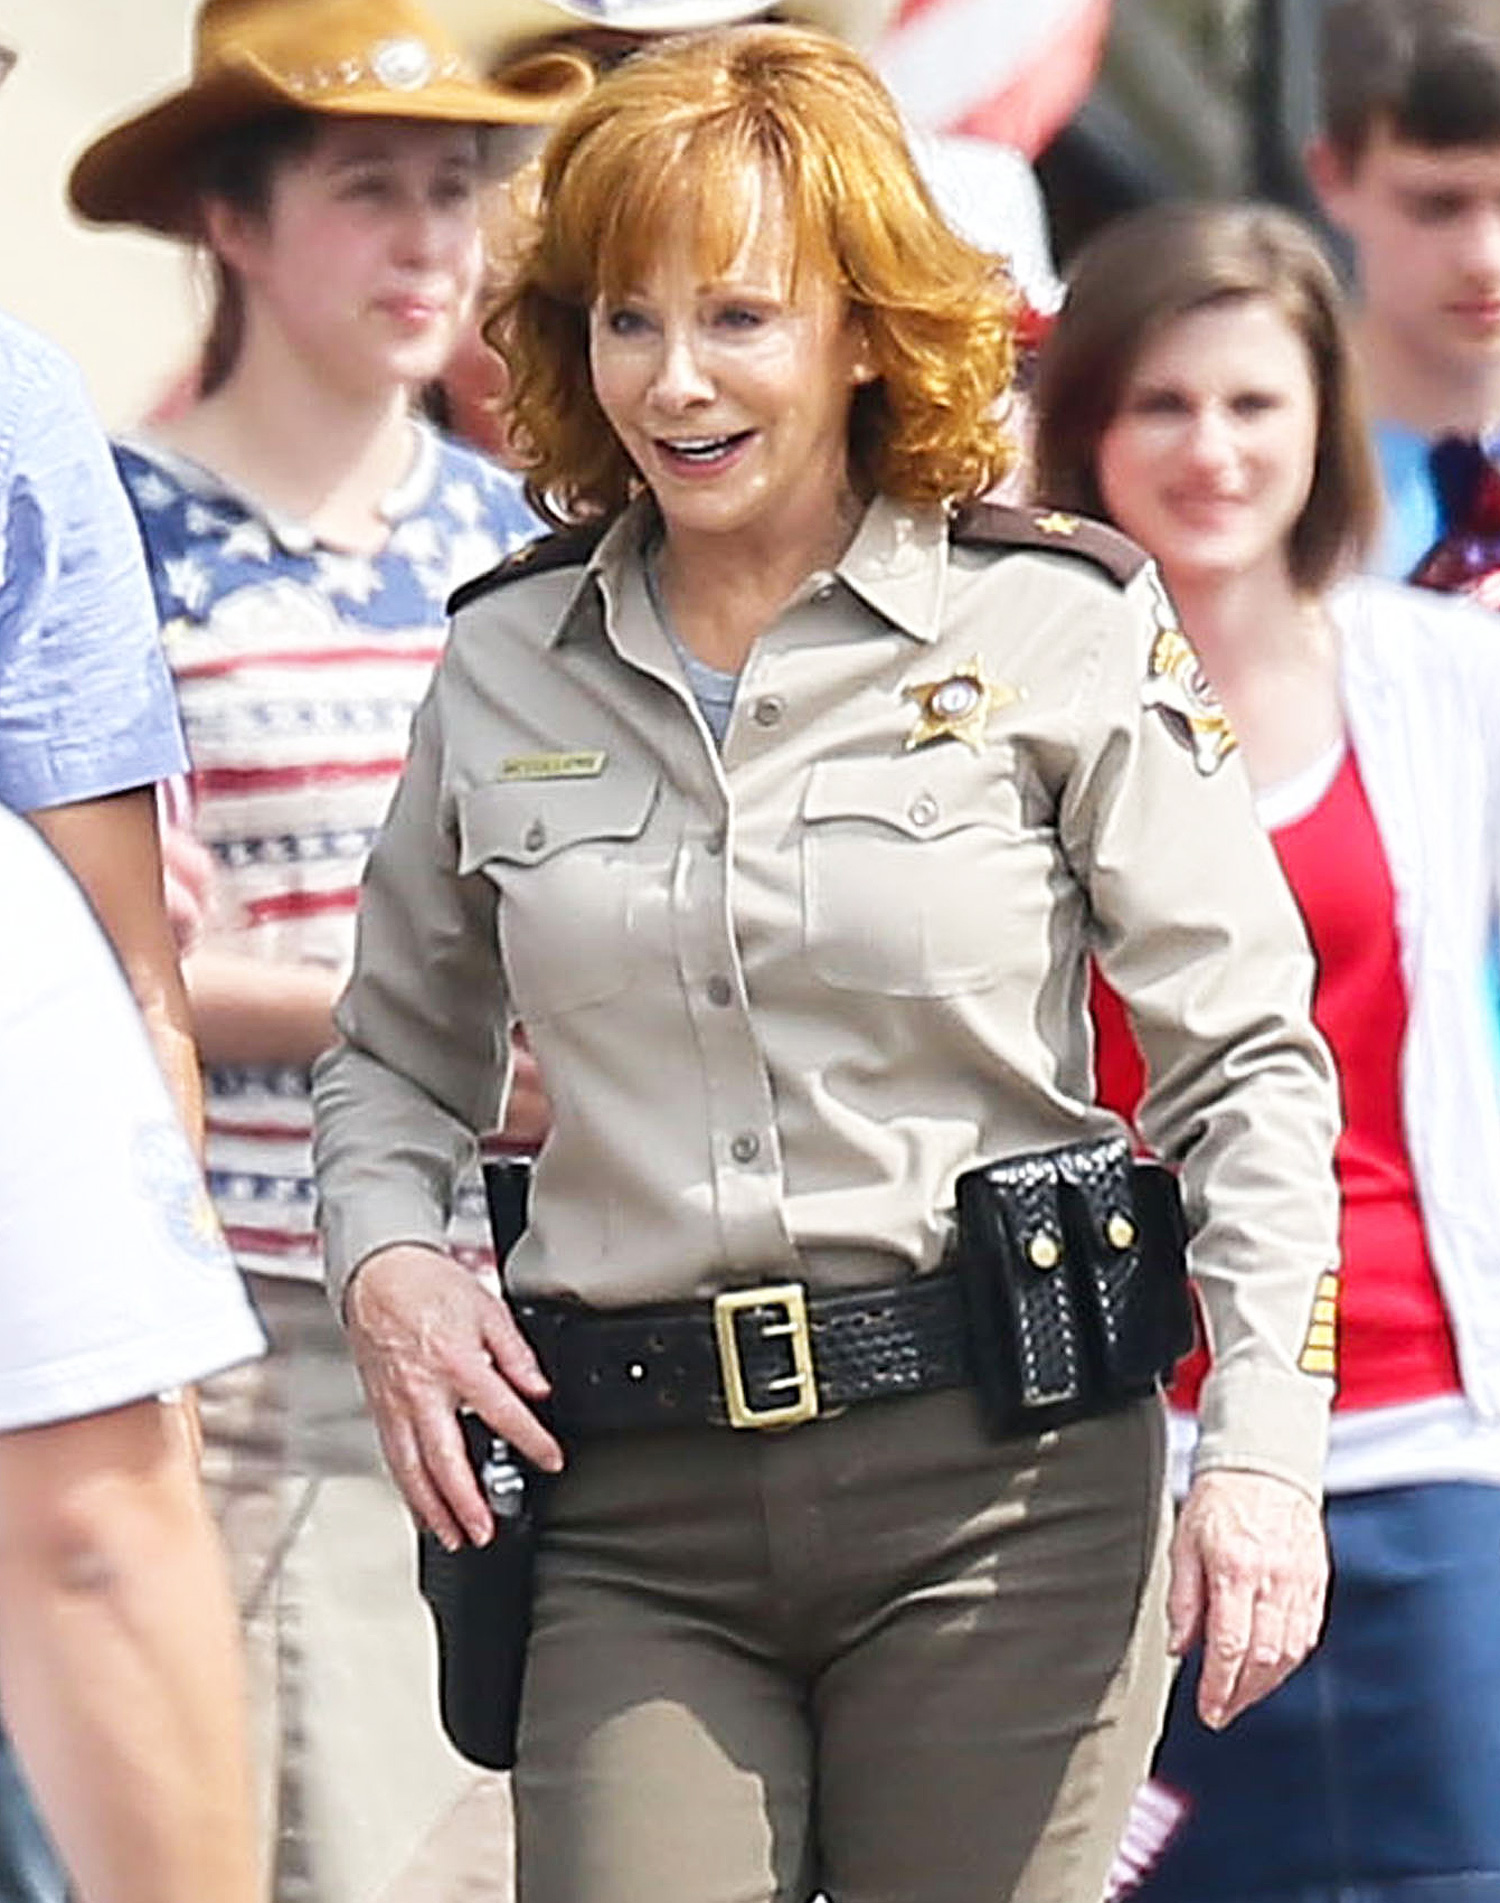 Exclusive... Reba McEntire Filming Her Upcoming TV Show